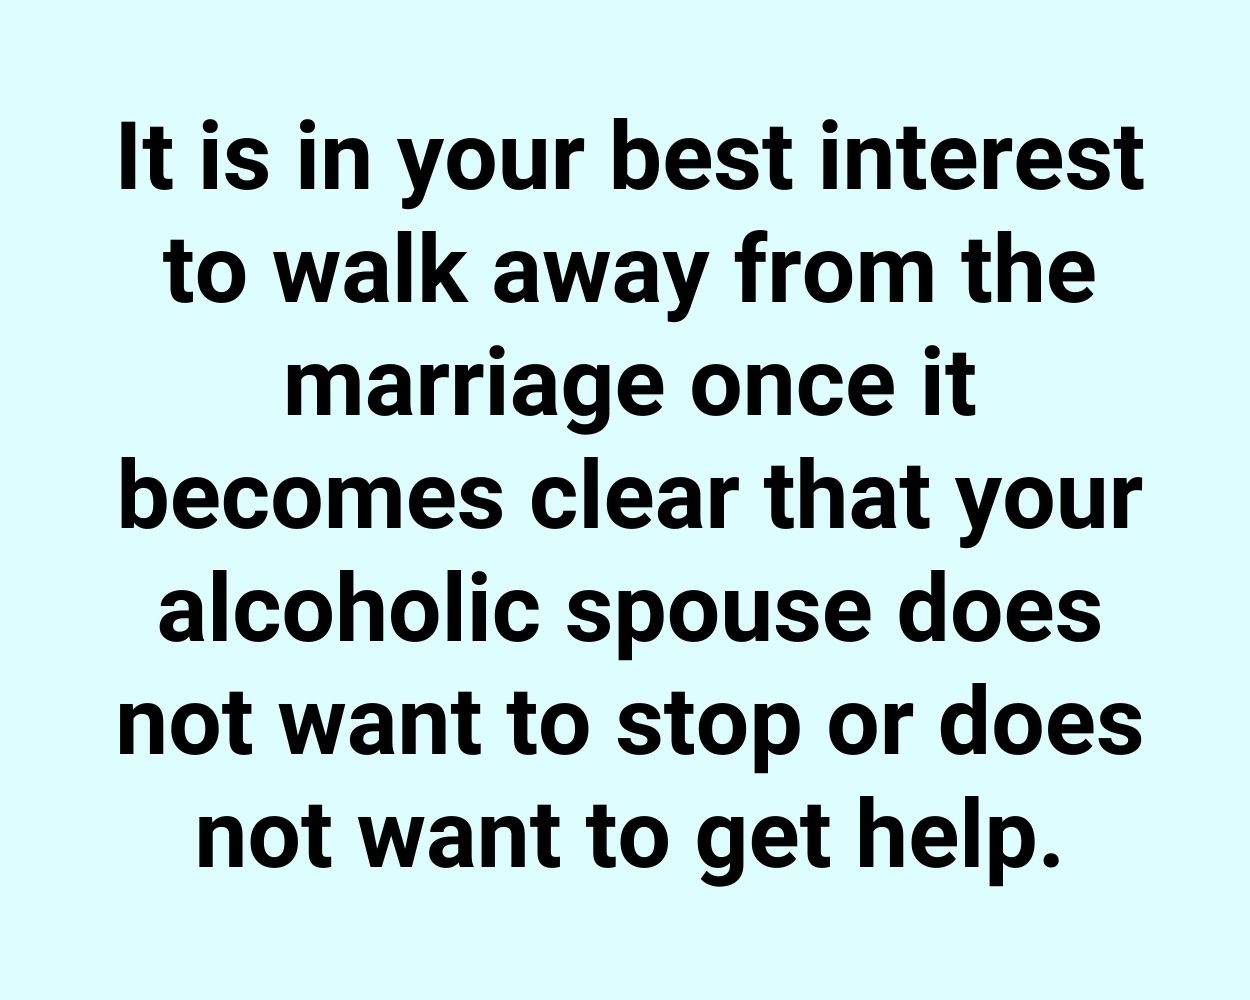 It is in your best interest to walk away from the marriage once it becomes clear